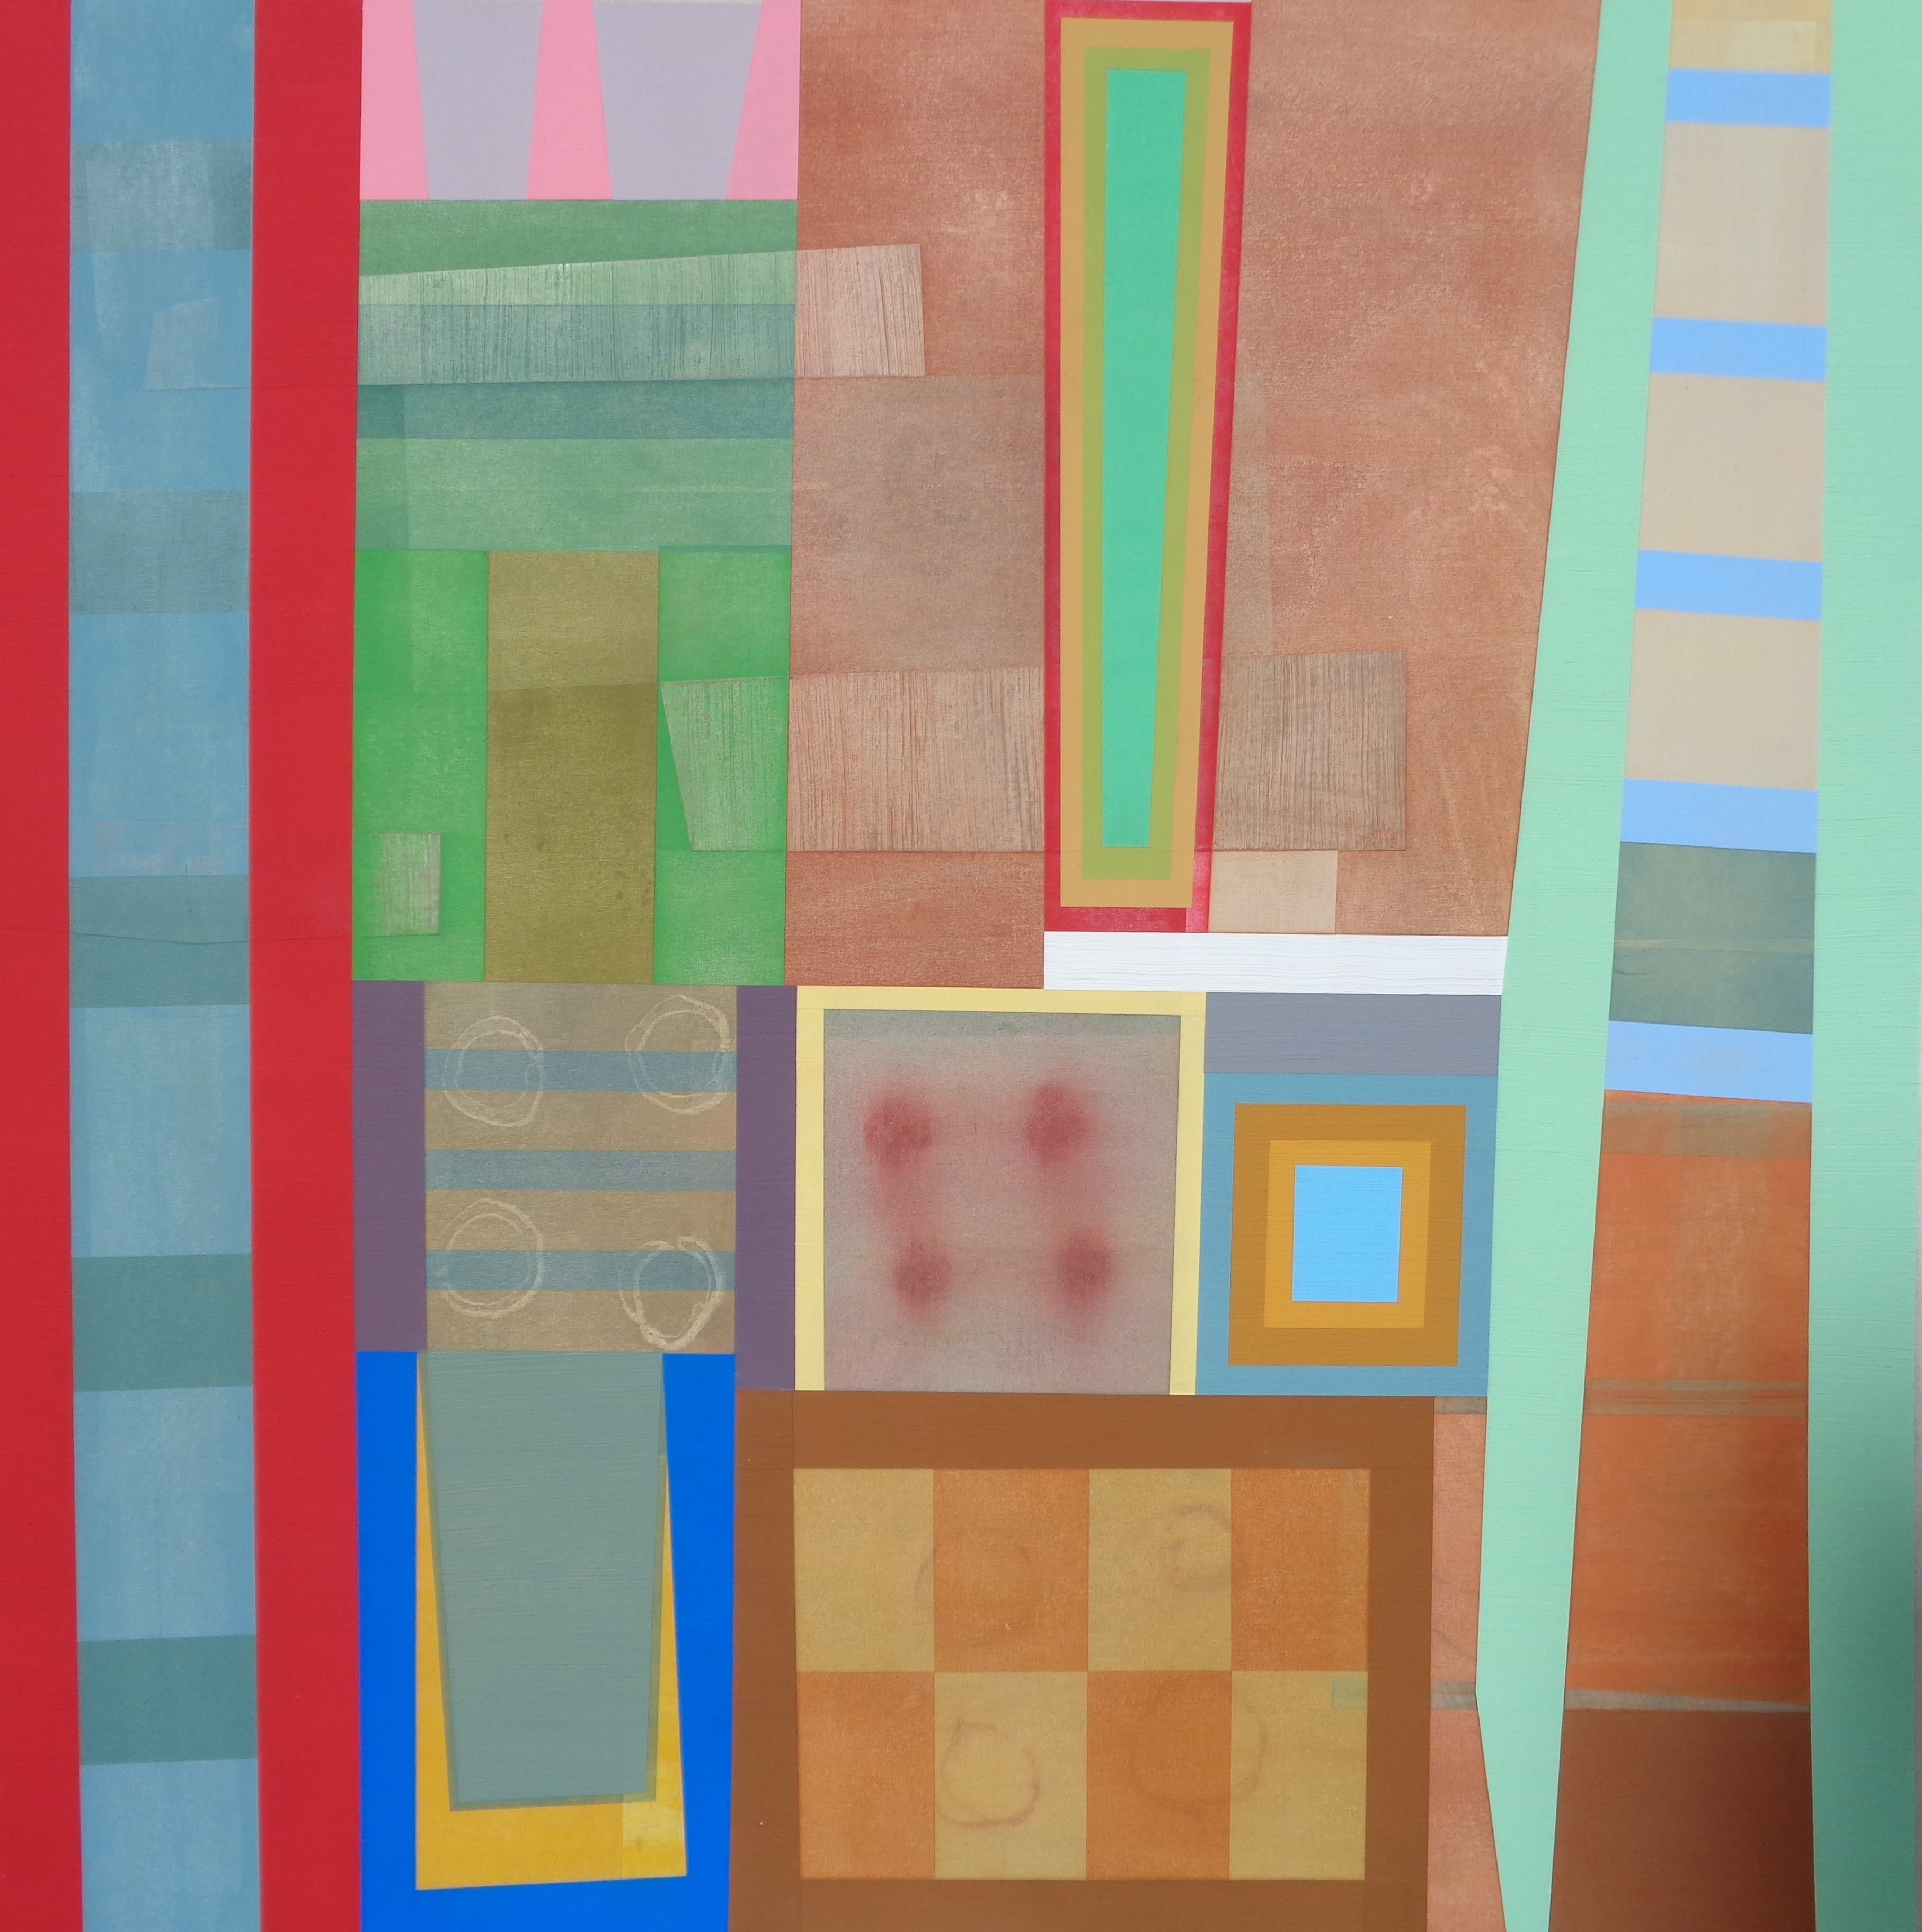 Michael Barringer, GB No. 7, mixed media on canvas, 48 x 48 inches